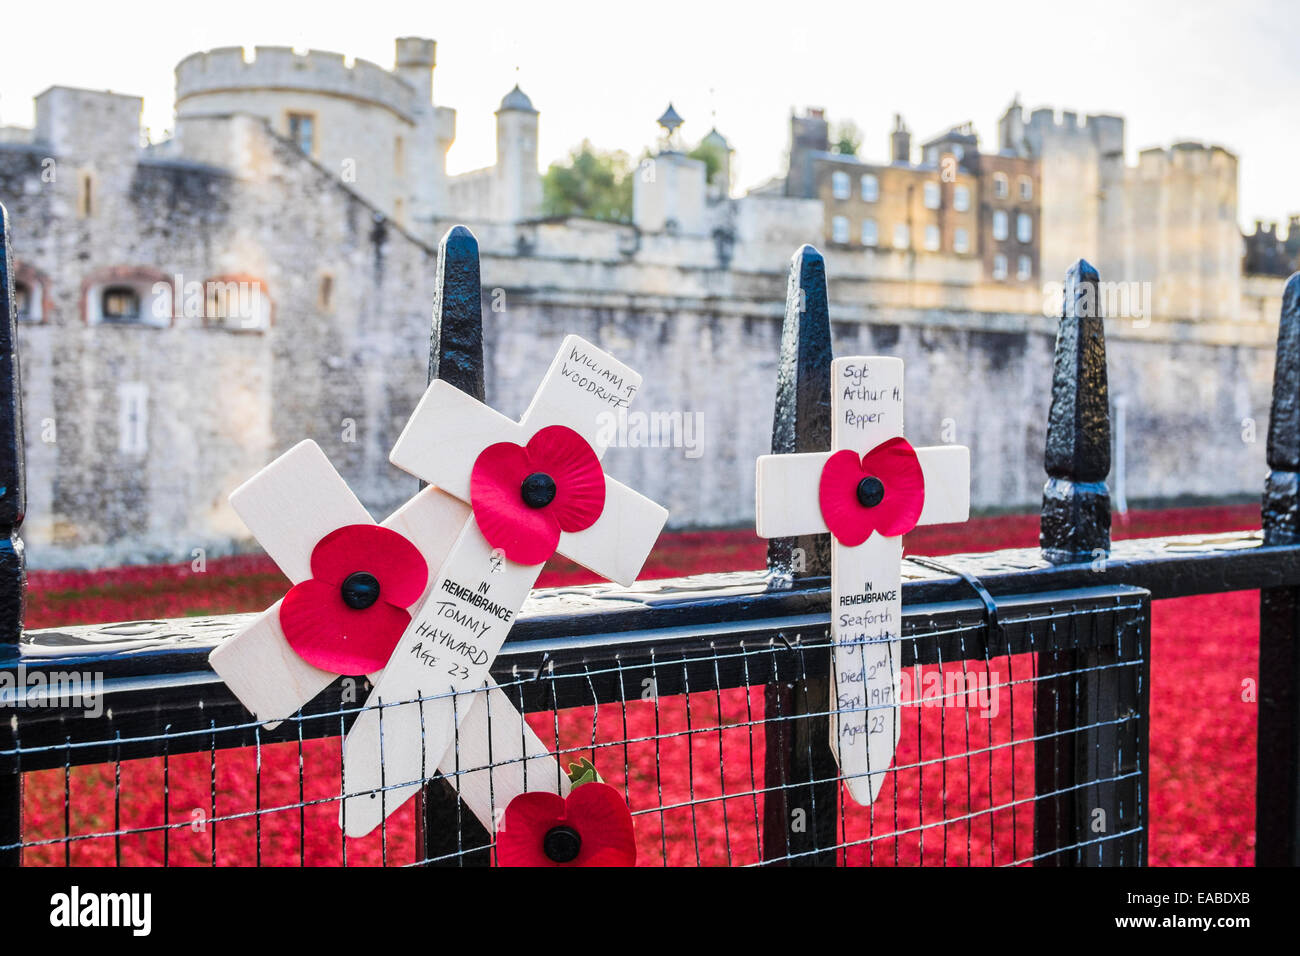 Blood Swept Lands & Seas of Red at the Tower of London Stock Photo